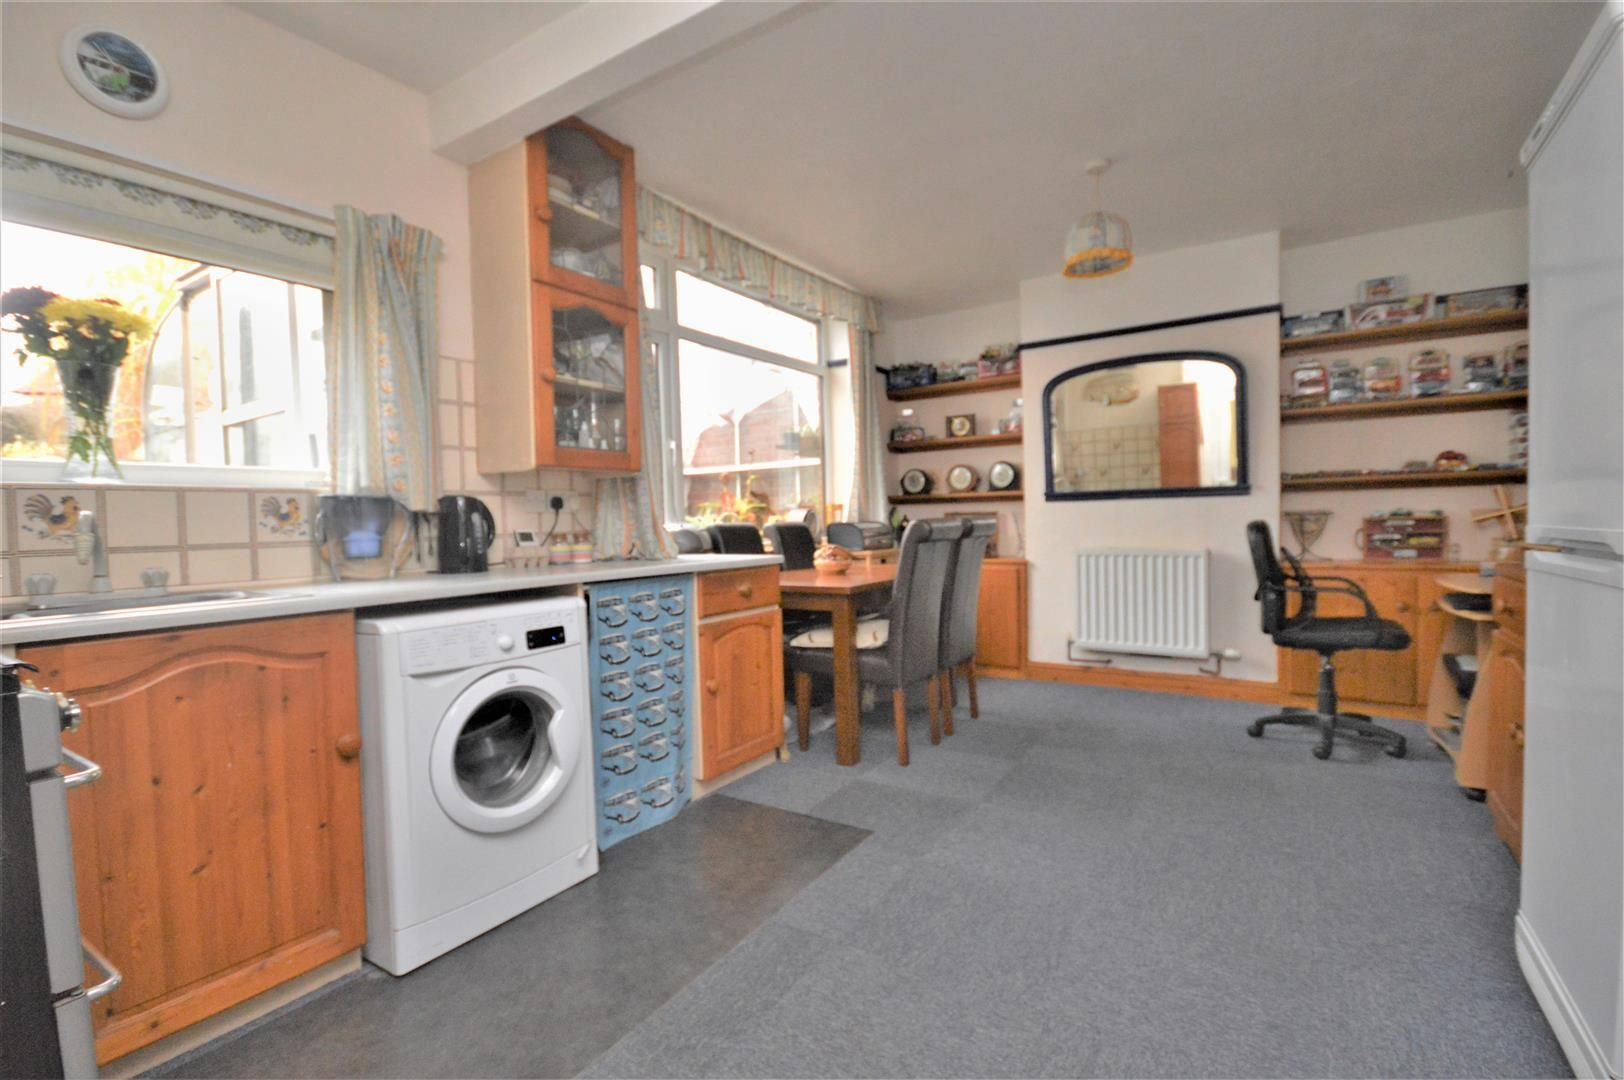 3 bed semi-detached for sale in Hereford 7